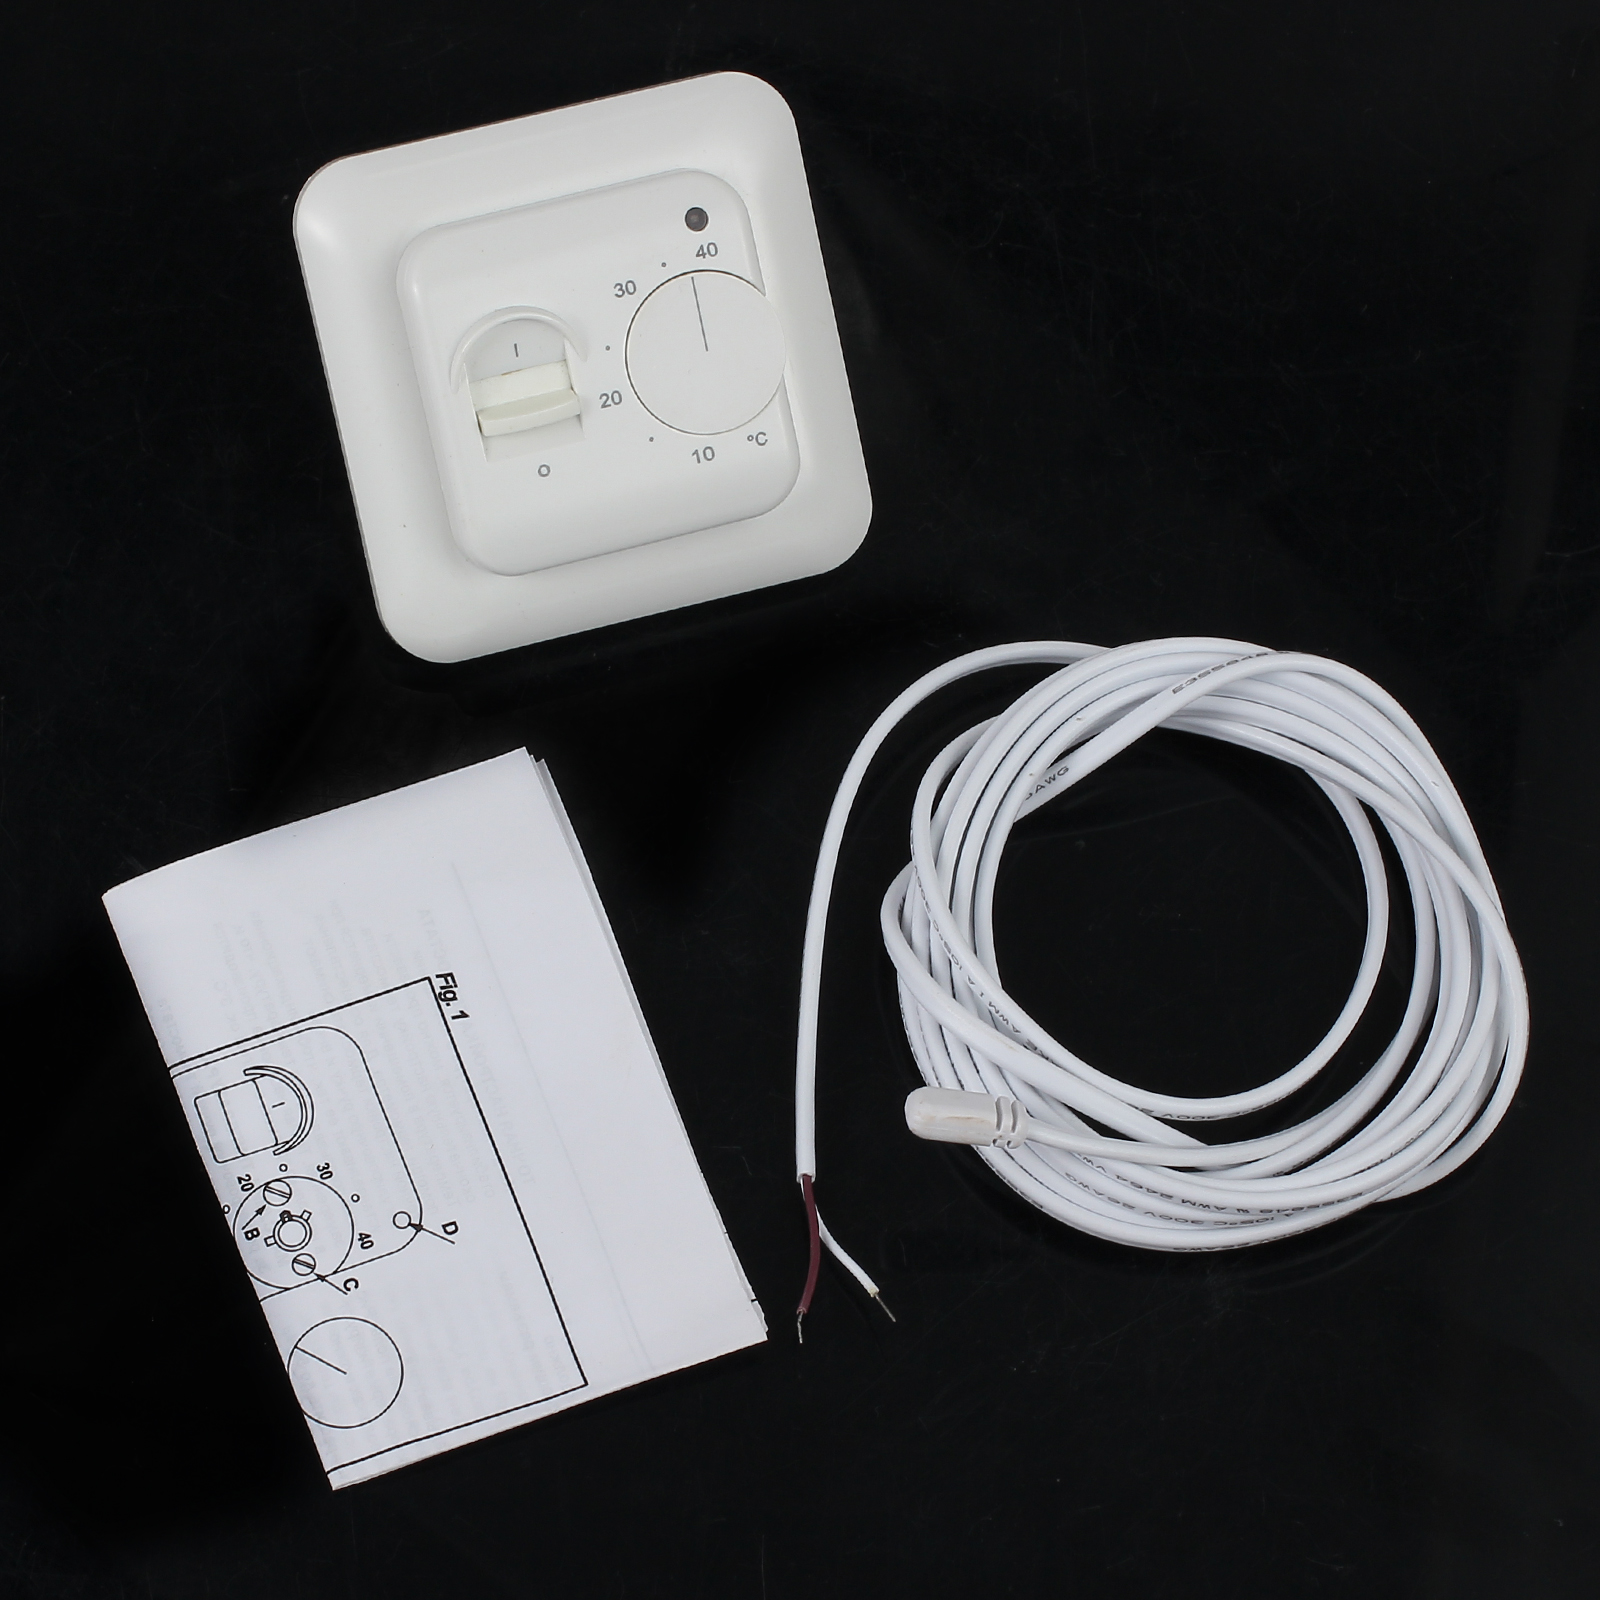 Digital Underfloor Electric Heating Manual Thermostat Device Floor Installation Guide By Discount 16a 5w Sensor